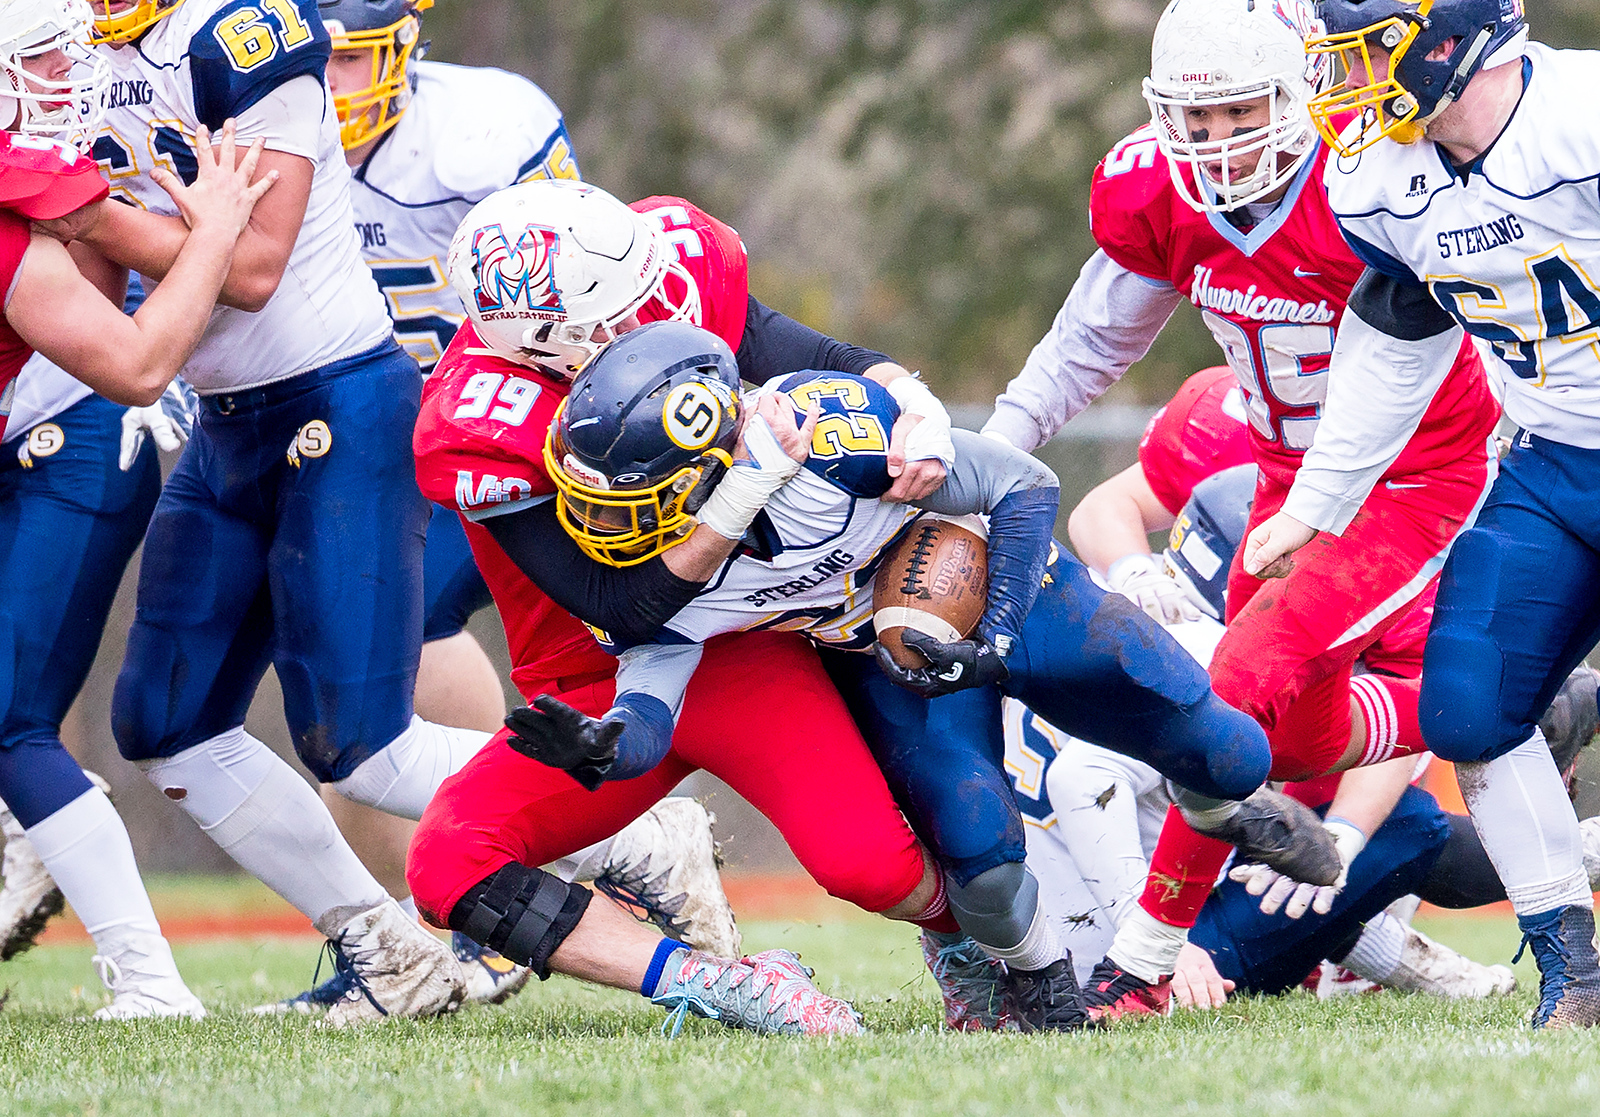 Marian Central Catholic senior Ben Keller (99) tackles Sterling's Nyrel Sullivan (23) for a loss during the Class 5A state quarterfinal game against Sterling Saturday, November 11, 2017 in Woodstock. The Hurricanes come up short falling to Sterling 22-10. KKoontz- For Shaw Media